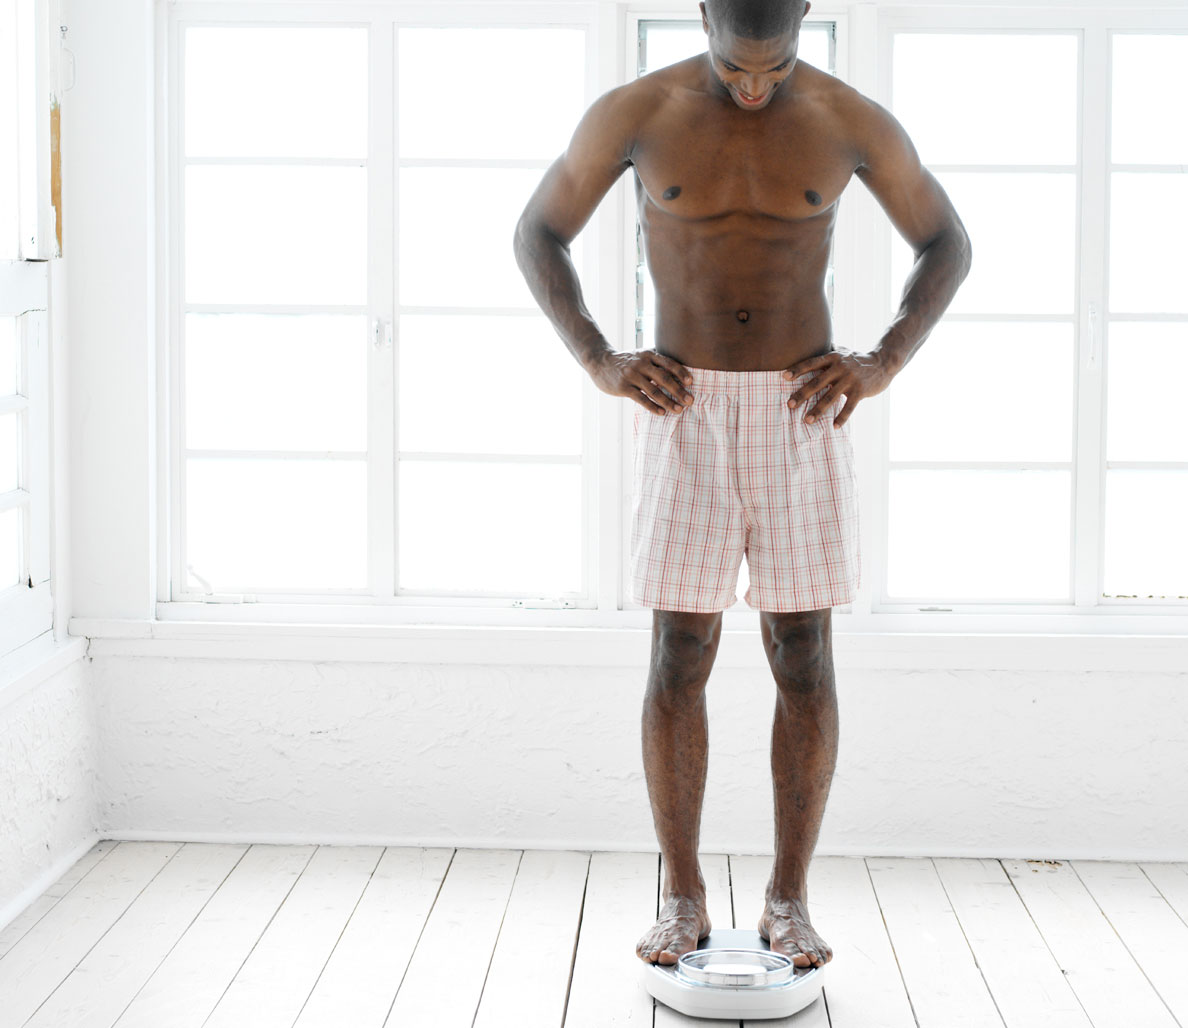 7 weight-loss lies people need to stop believing